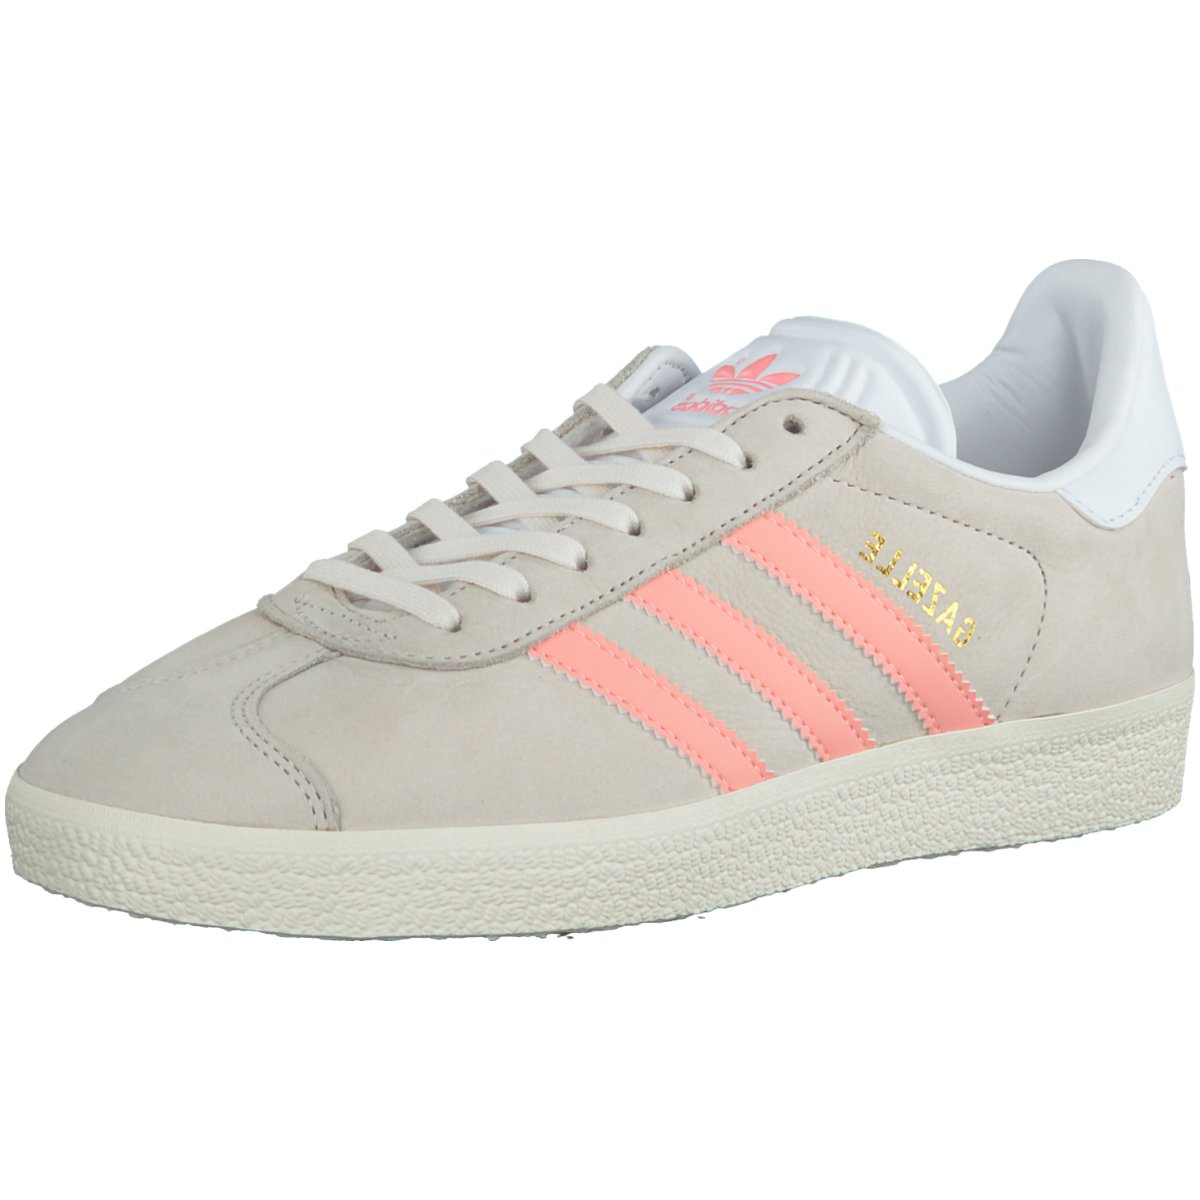 adidas Originals Gazelle Originals Damen Sneakers